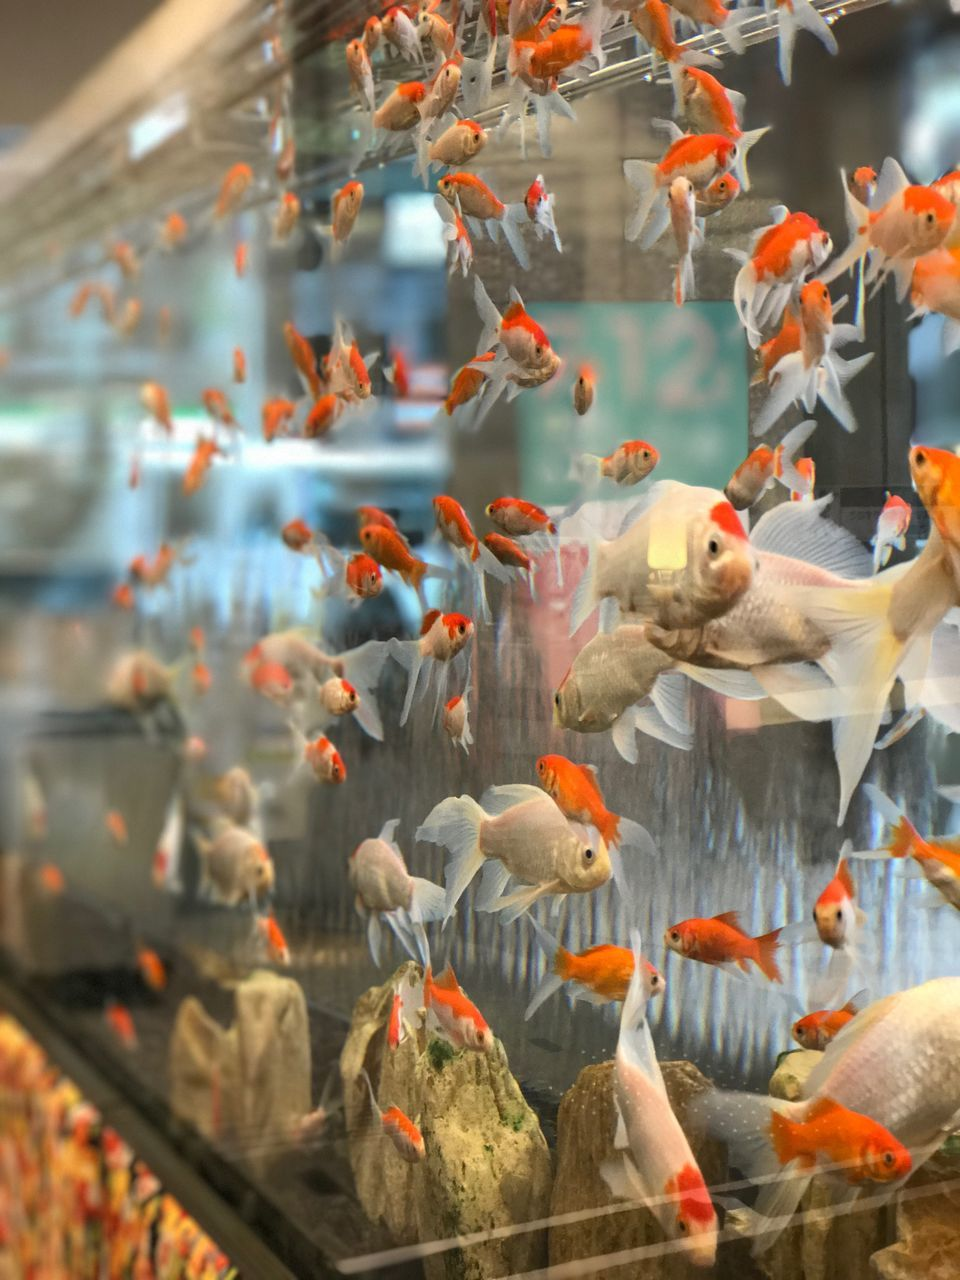 water, large group of animals, fish, animal themes, swimming, koi carp, animals in the wild, group of animals, no people, carp, nature, goldfish, togetherness, day, sea life, close-up, indoors